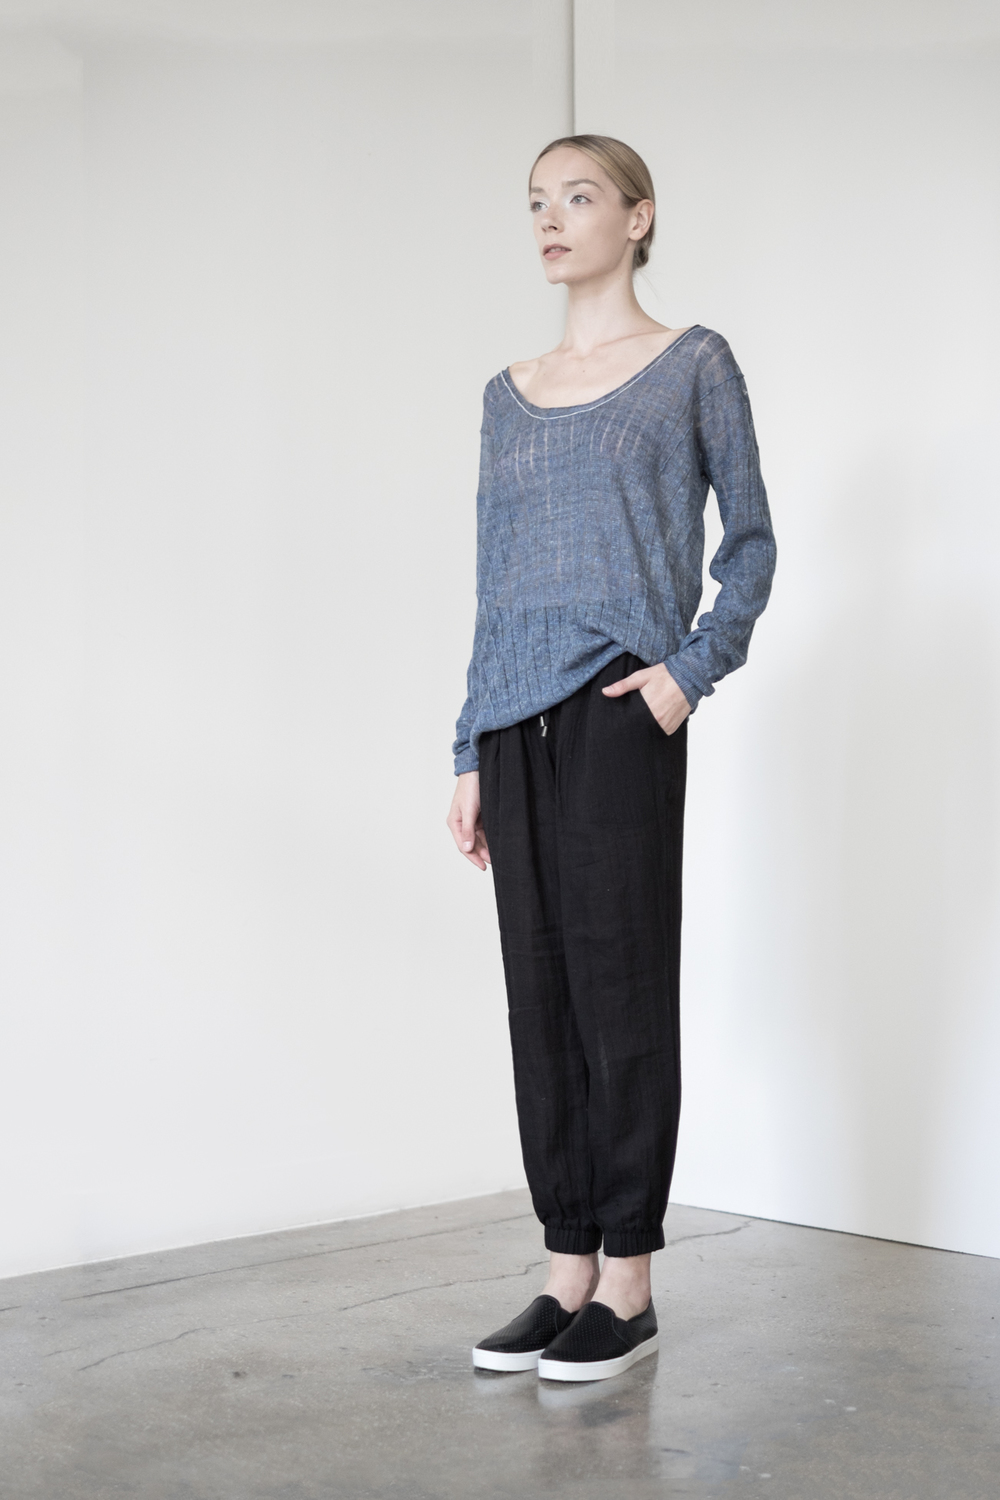 LOOK 42   TOP:   2230  / Denim   -    Scoop neck long sleeve, in fine gauge Italian linen neps. WS:  88   BOTTOM:   2290  / Noir  -   Jogger pants in 100% Cotton woven dbl. layer gauze.